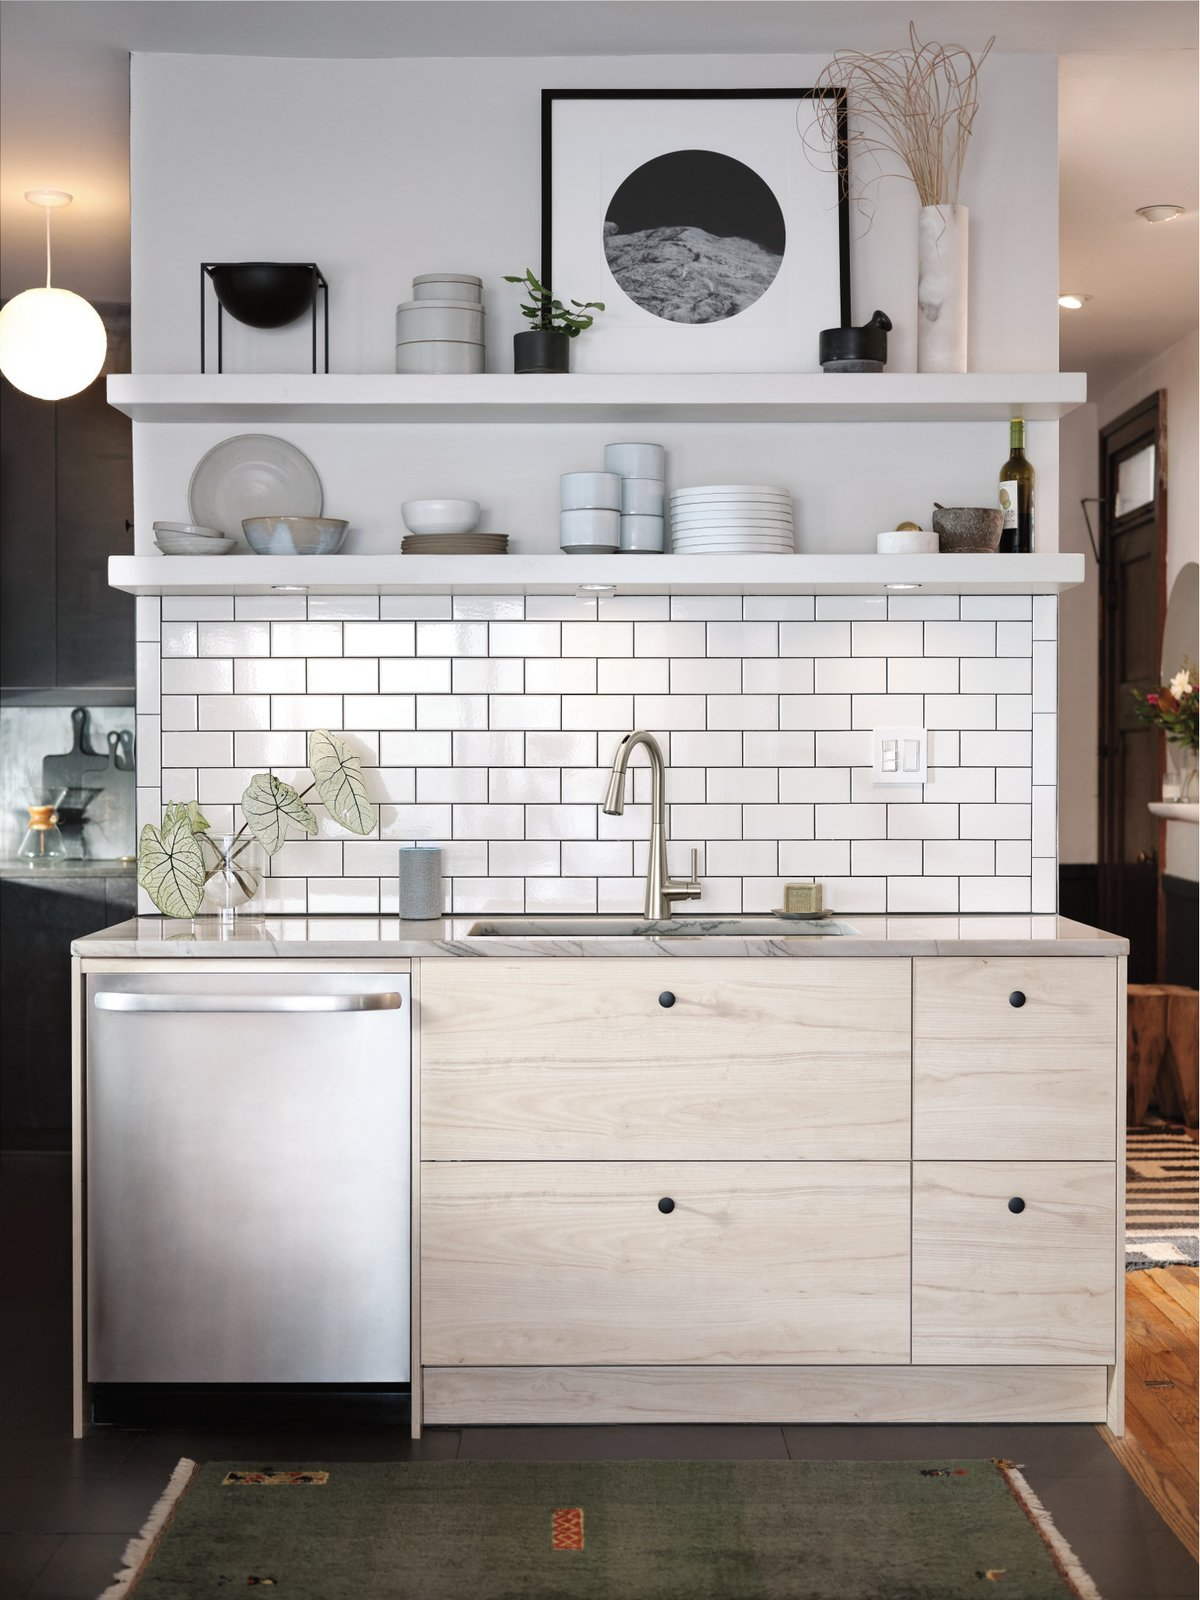 TRENDING PRODUCTS FROM KBIS AND IBS 2020 DWELL